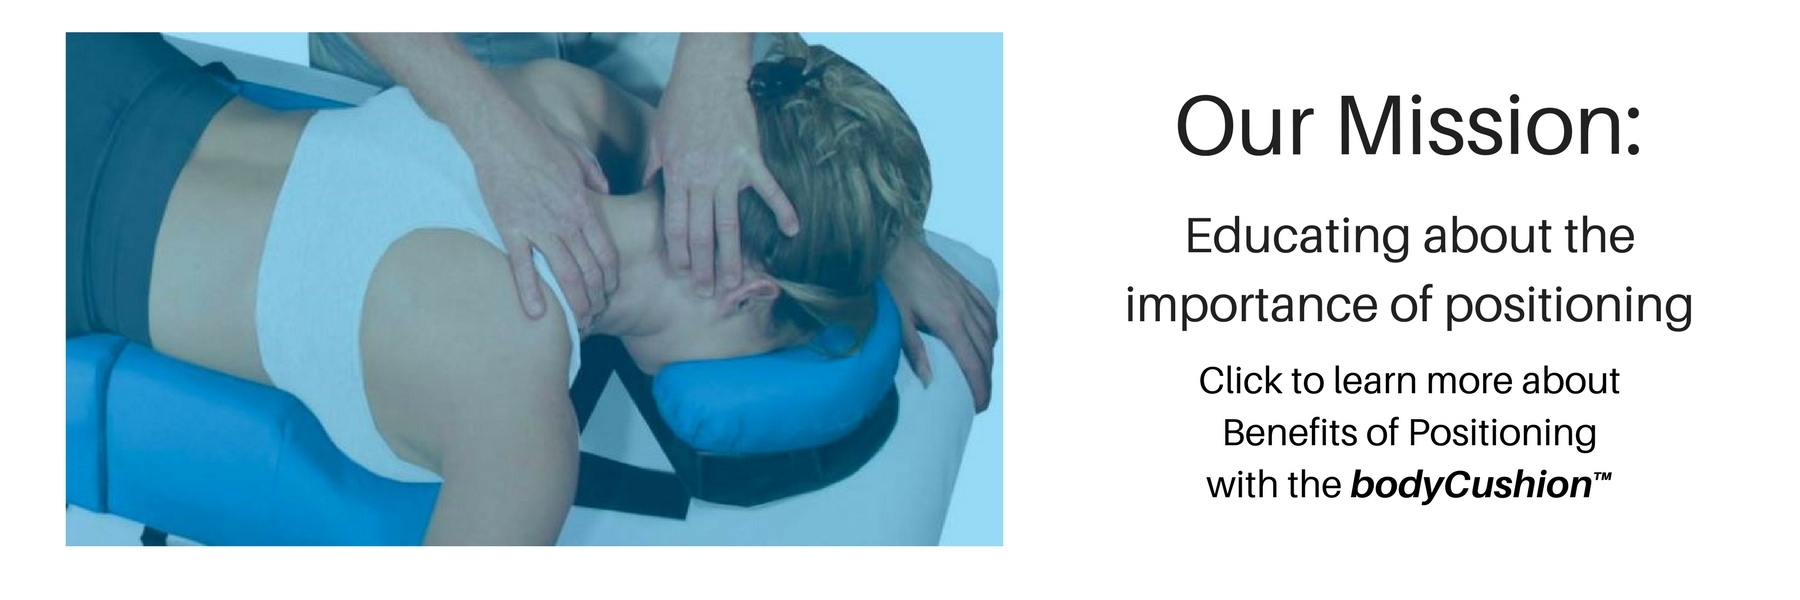 Our Mission: Educating about the importance of positioning. Click to learn more about the Benefits of Positioning with the bodyCushion